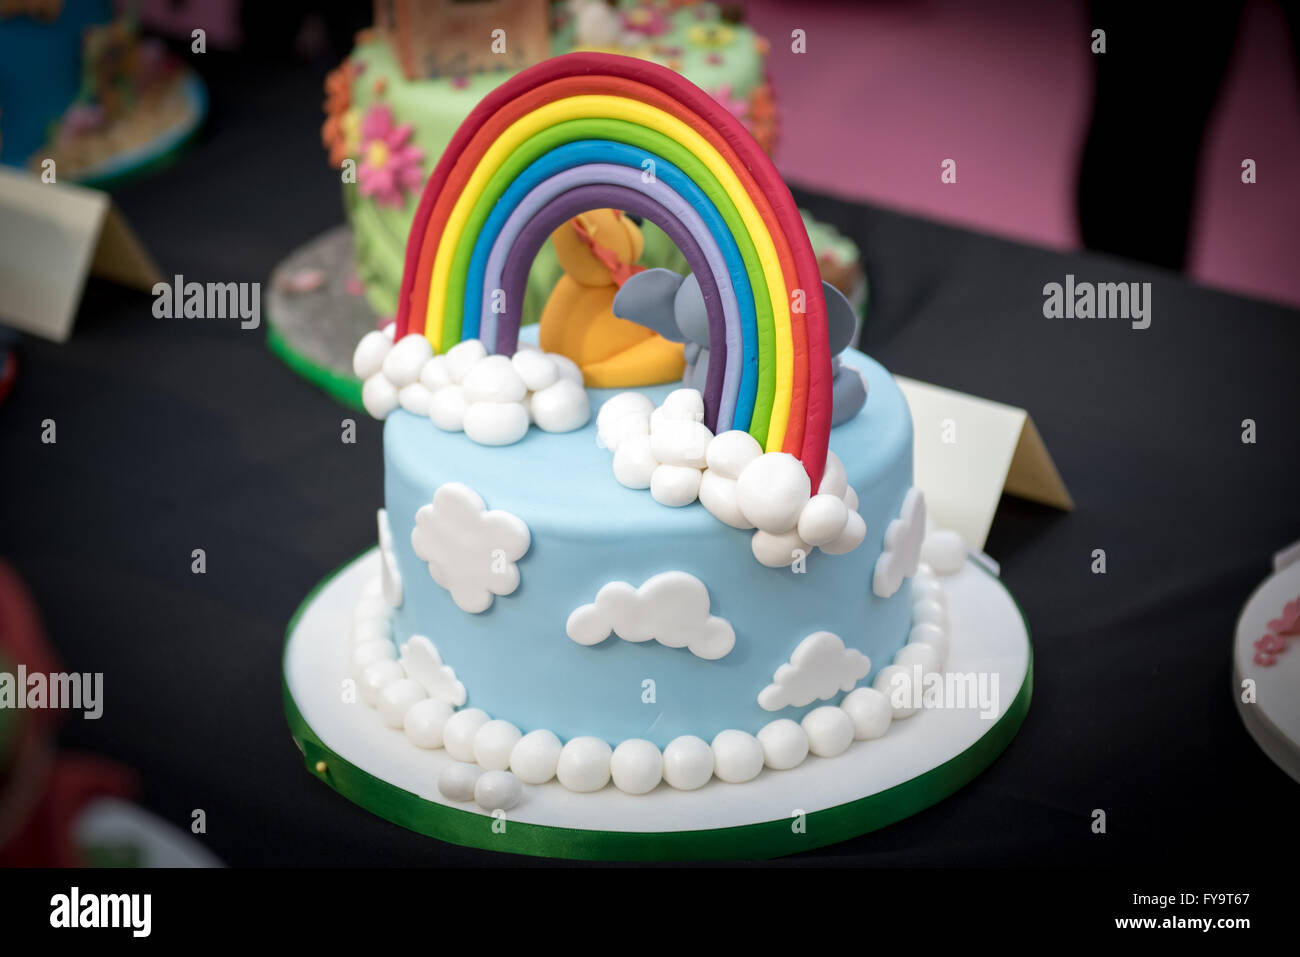 Rainbow and clouds decorative cake at Cake International ...